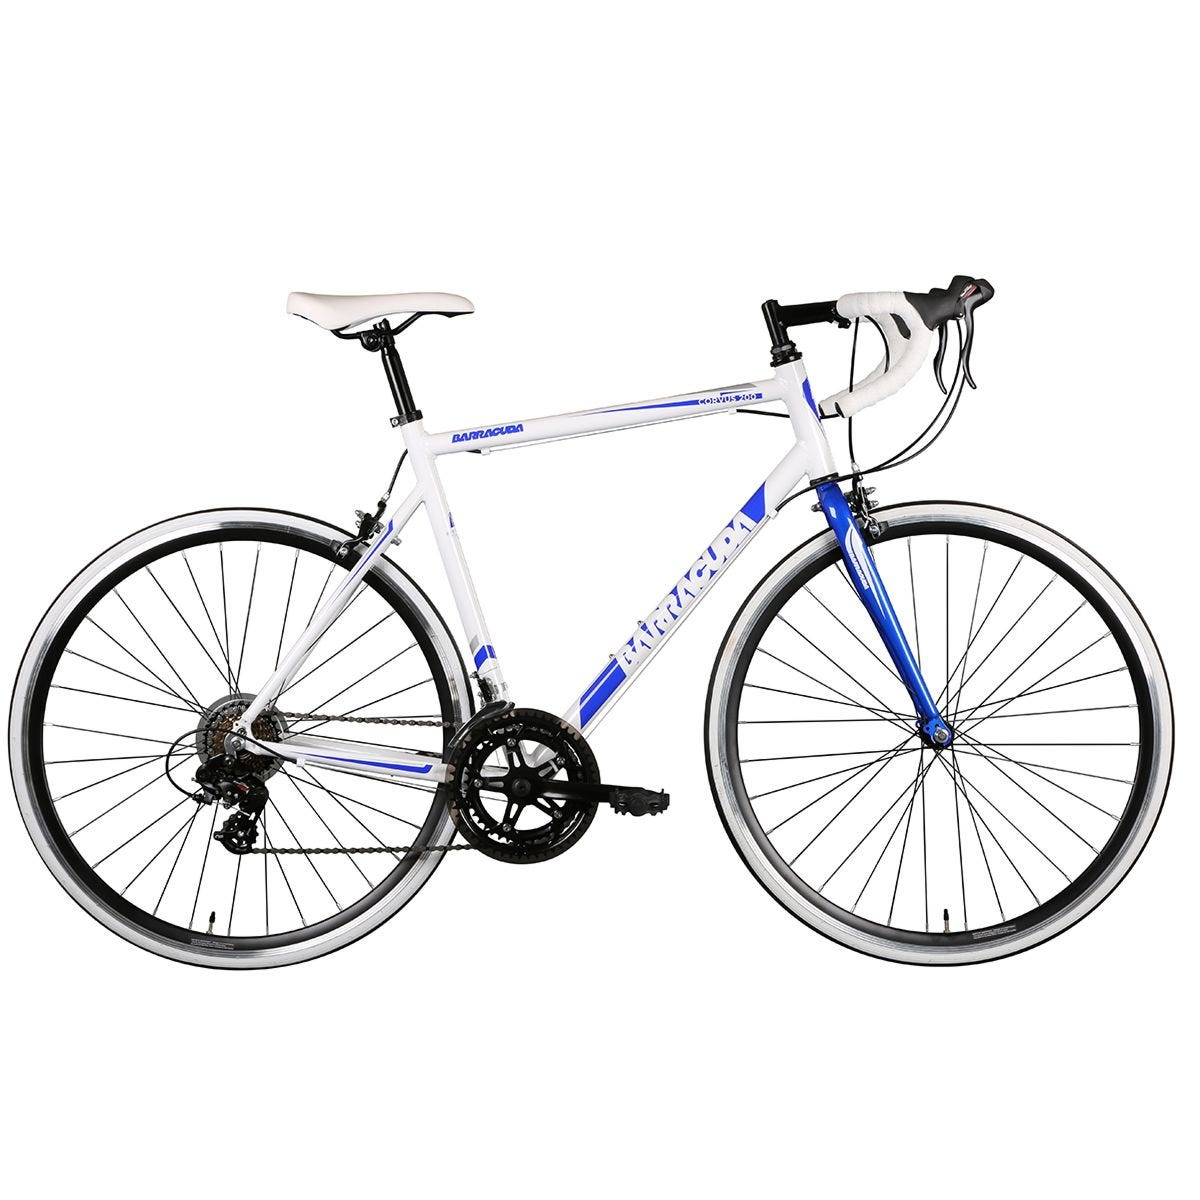 Barracuda Corvus 200 Steel Road Bike 700c Wheel - White/Blue